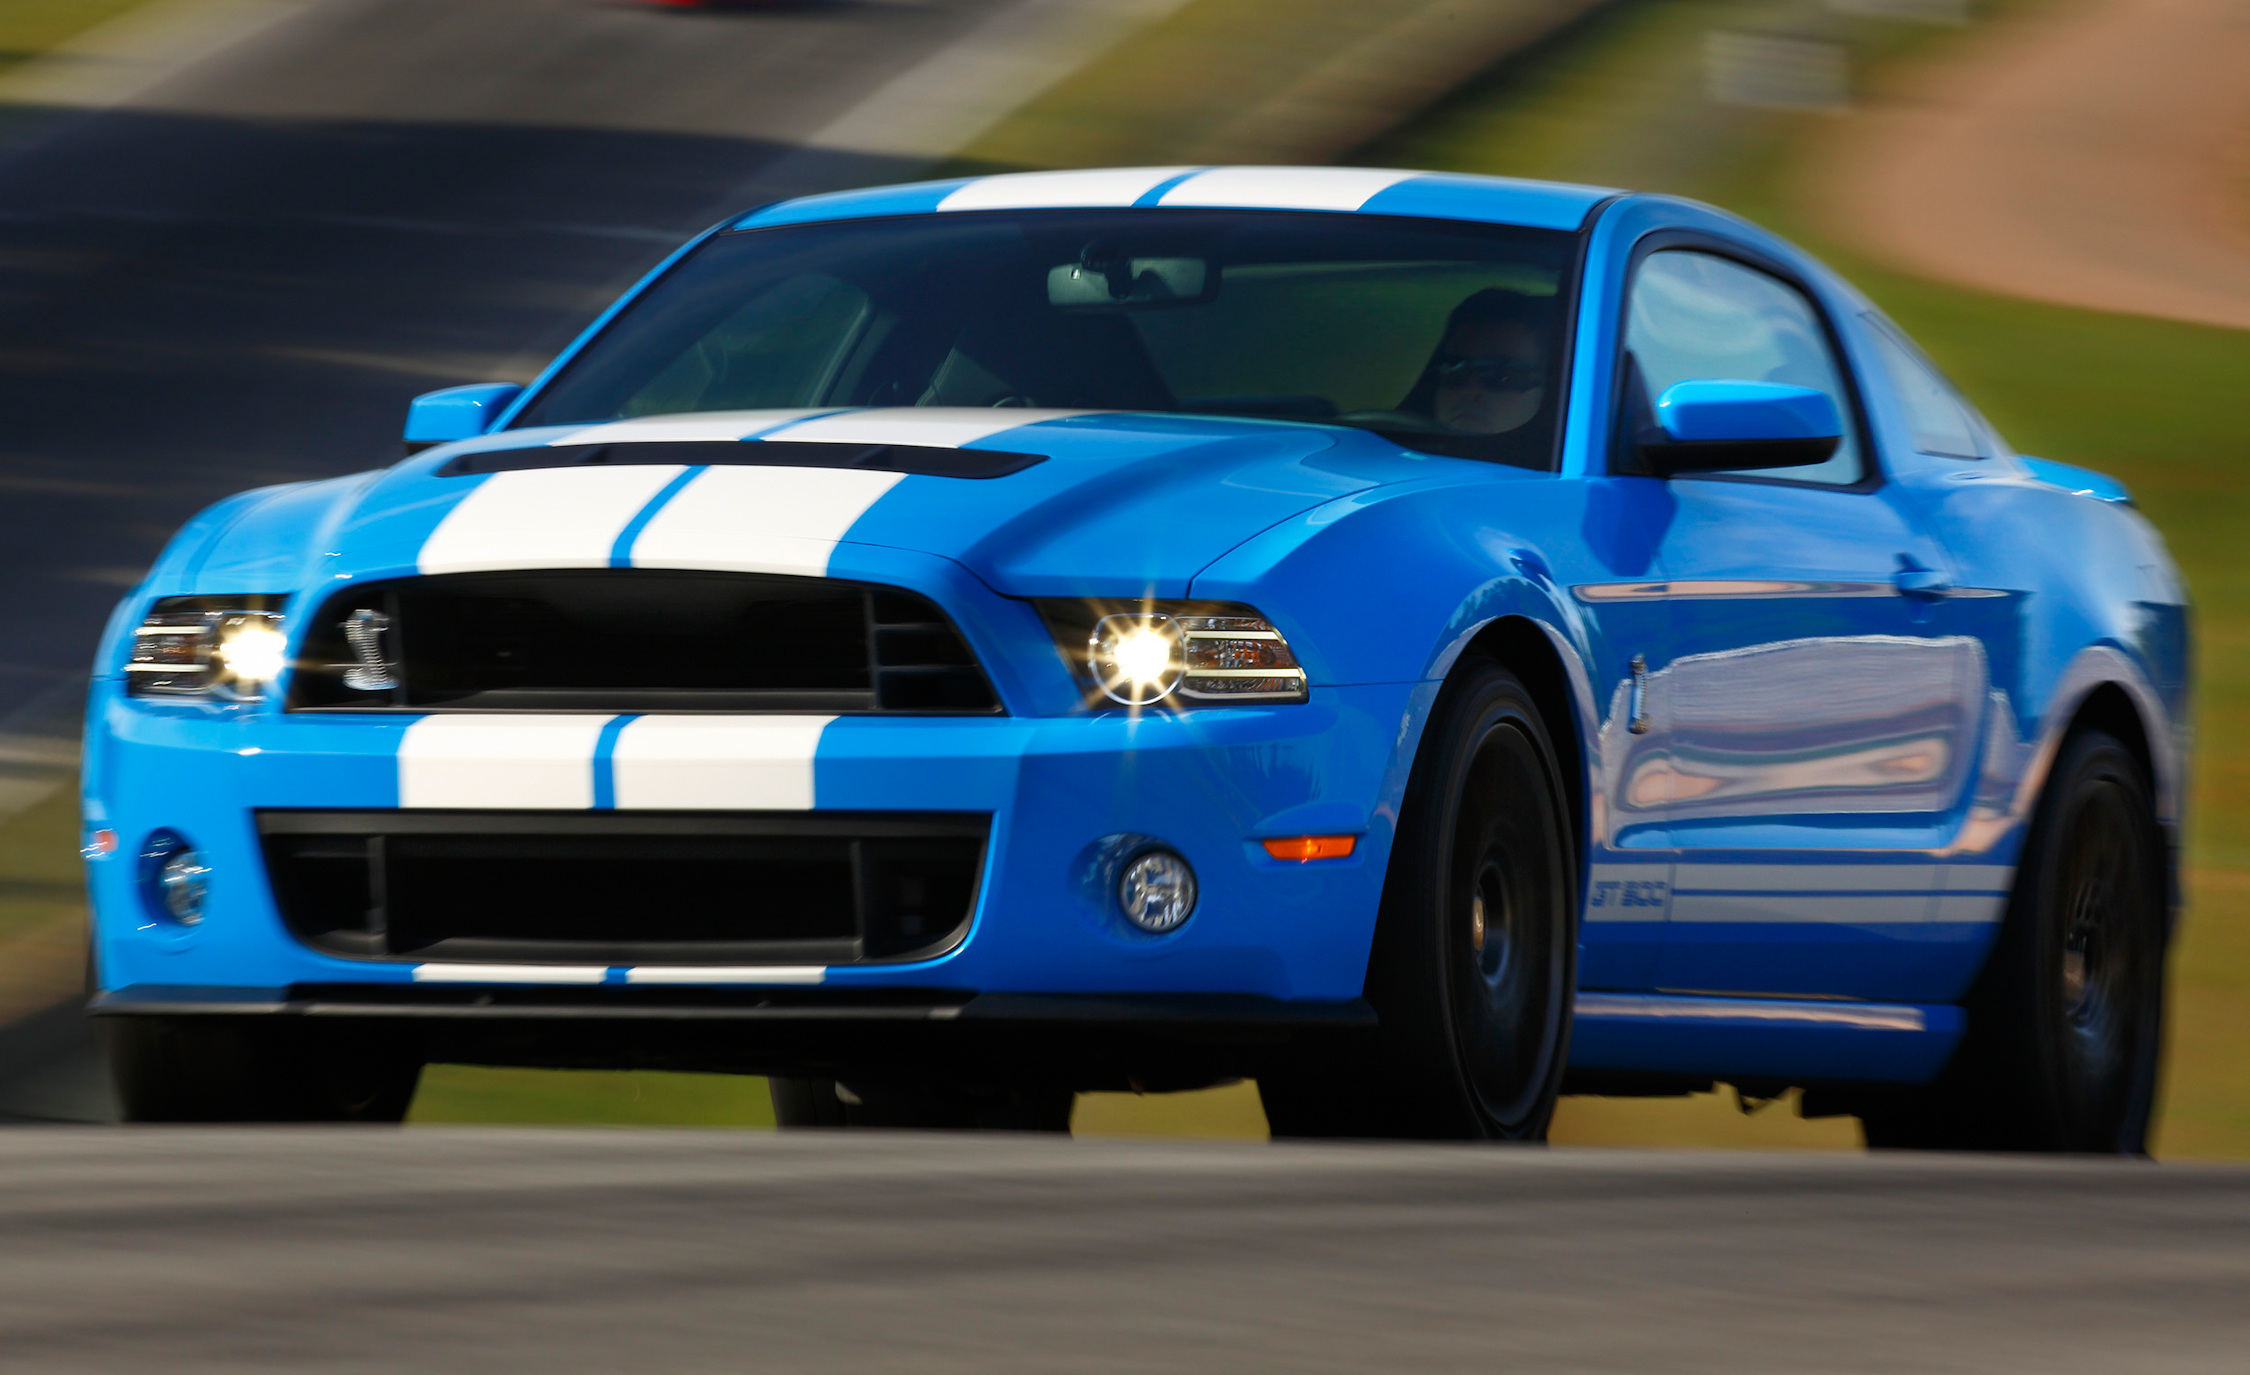 2013 Ford Mustang Shelby GT500 Blue Test Drive Preview (View 41 of 47)